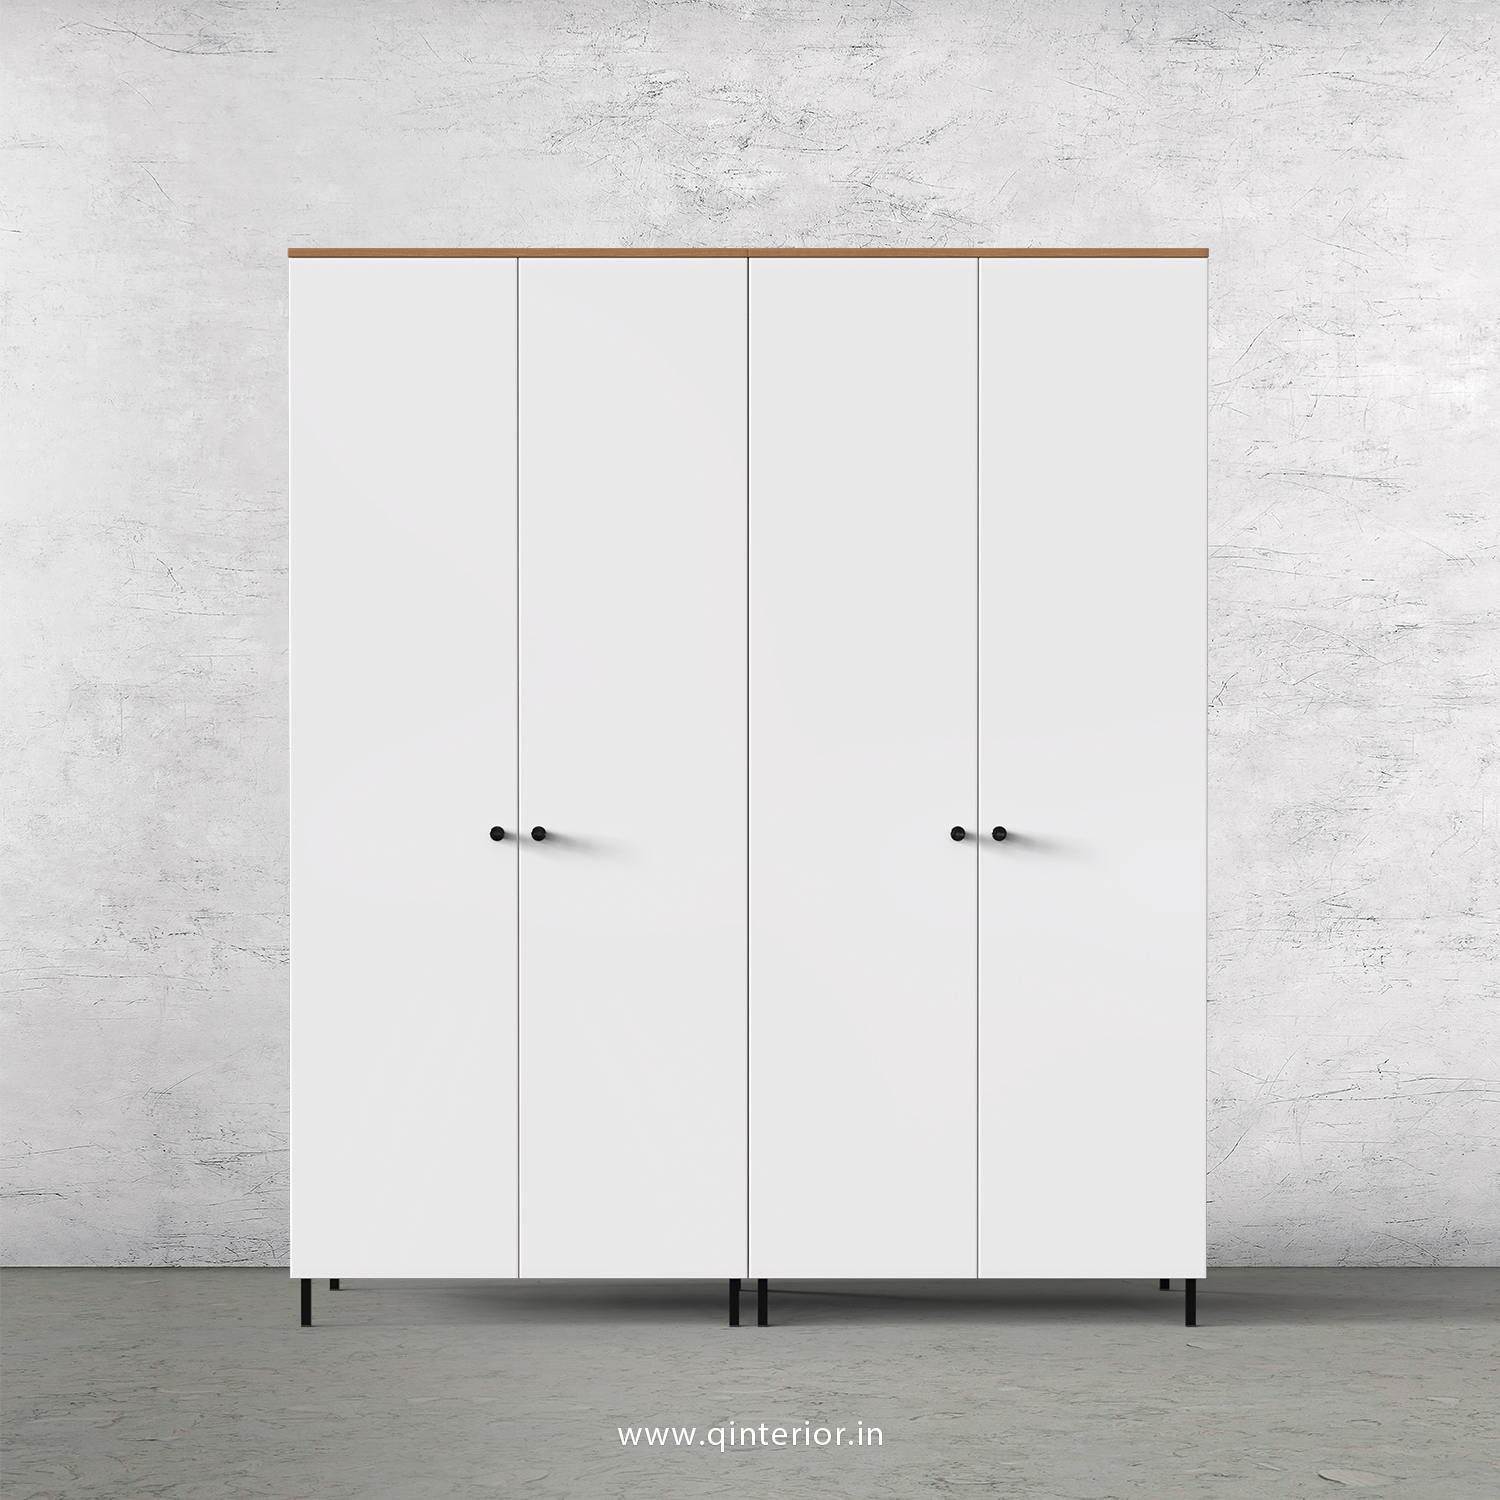 Lambent 4 Door Wardrobe in Oak and White Finish – FWRD001 C8